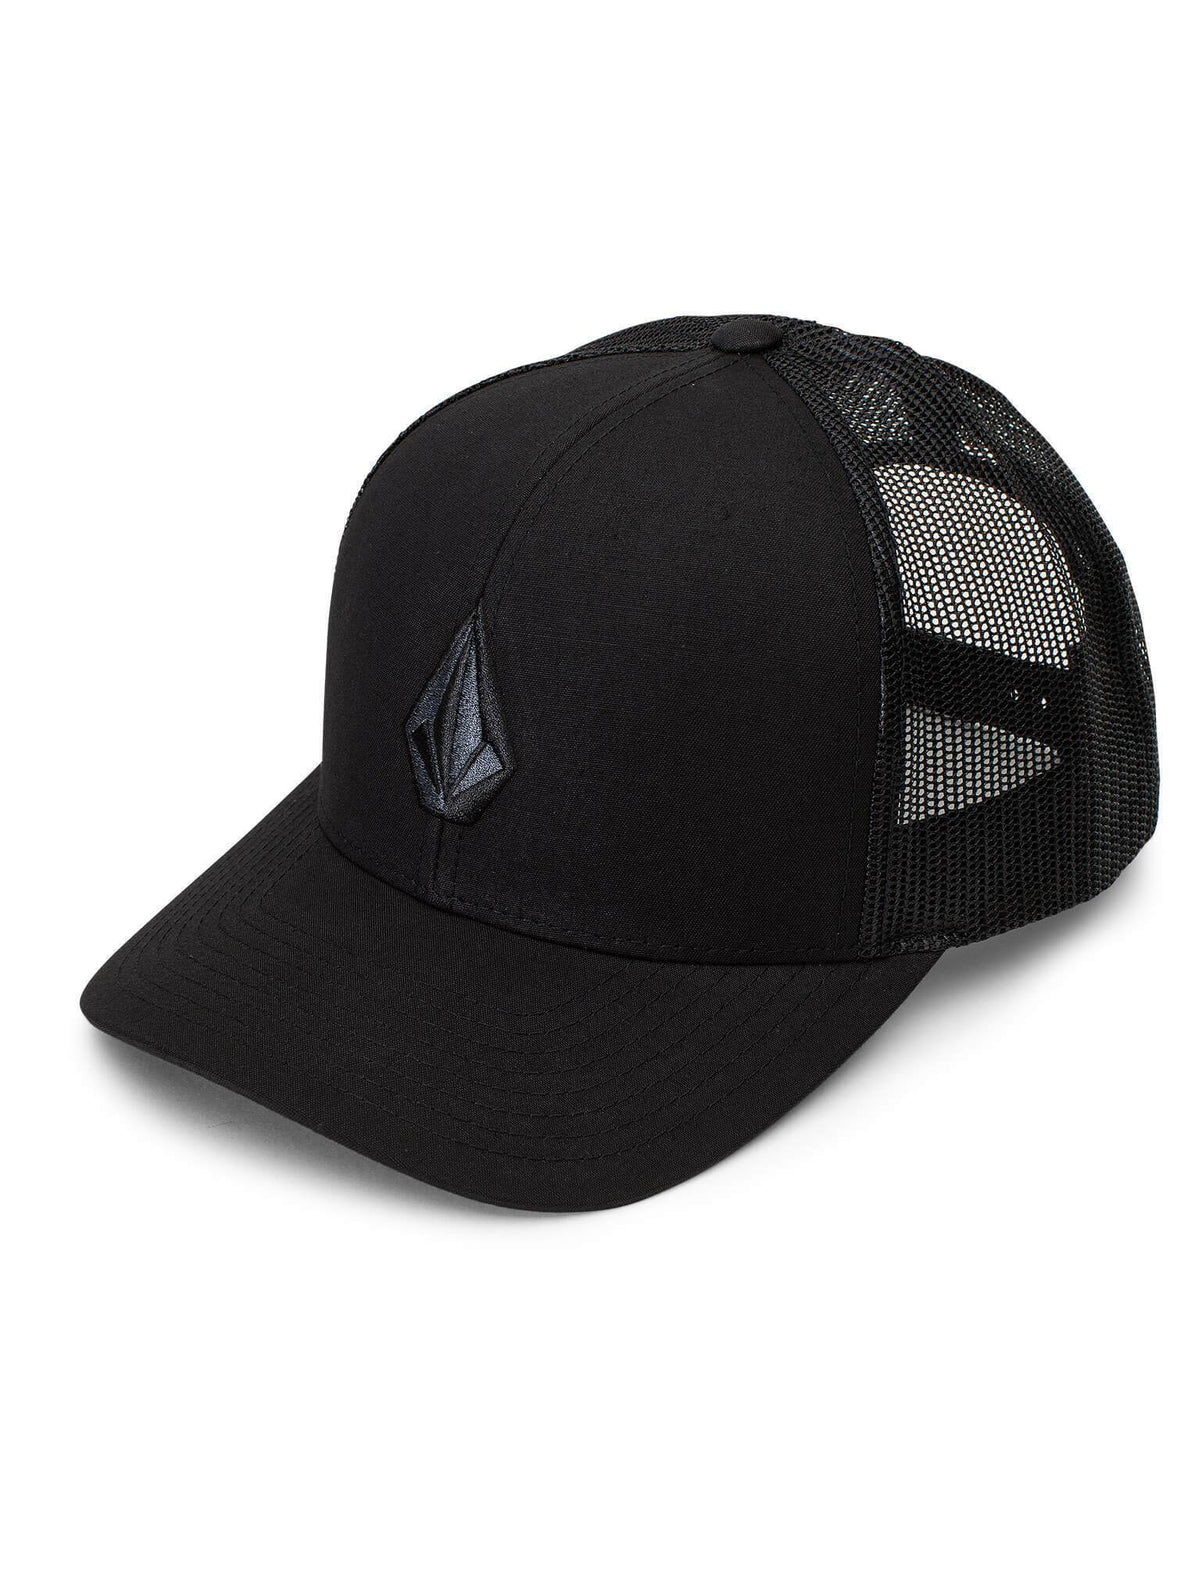 Full Stone Cheese Hat - Asphalt Black